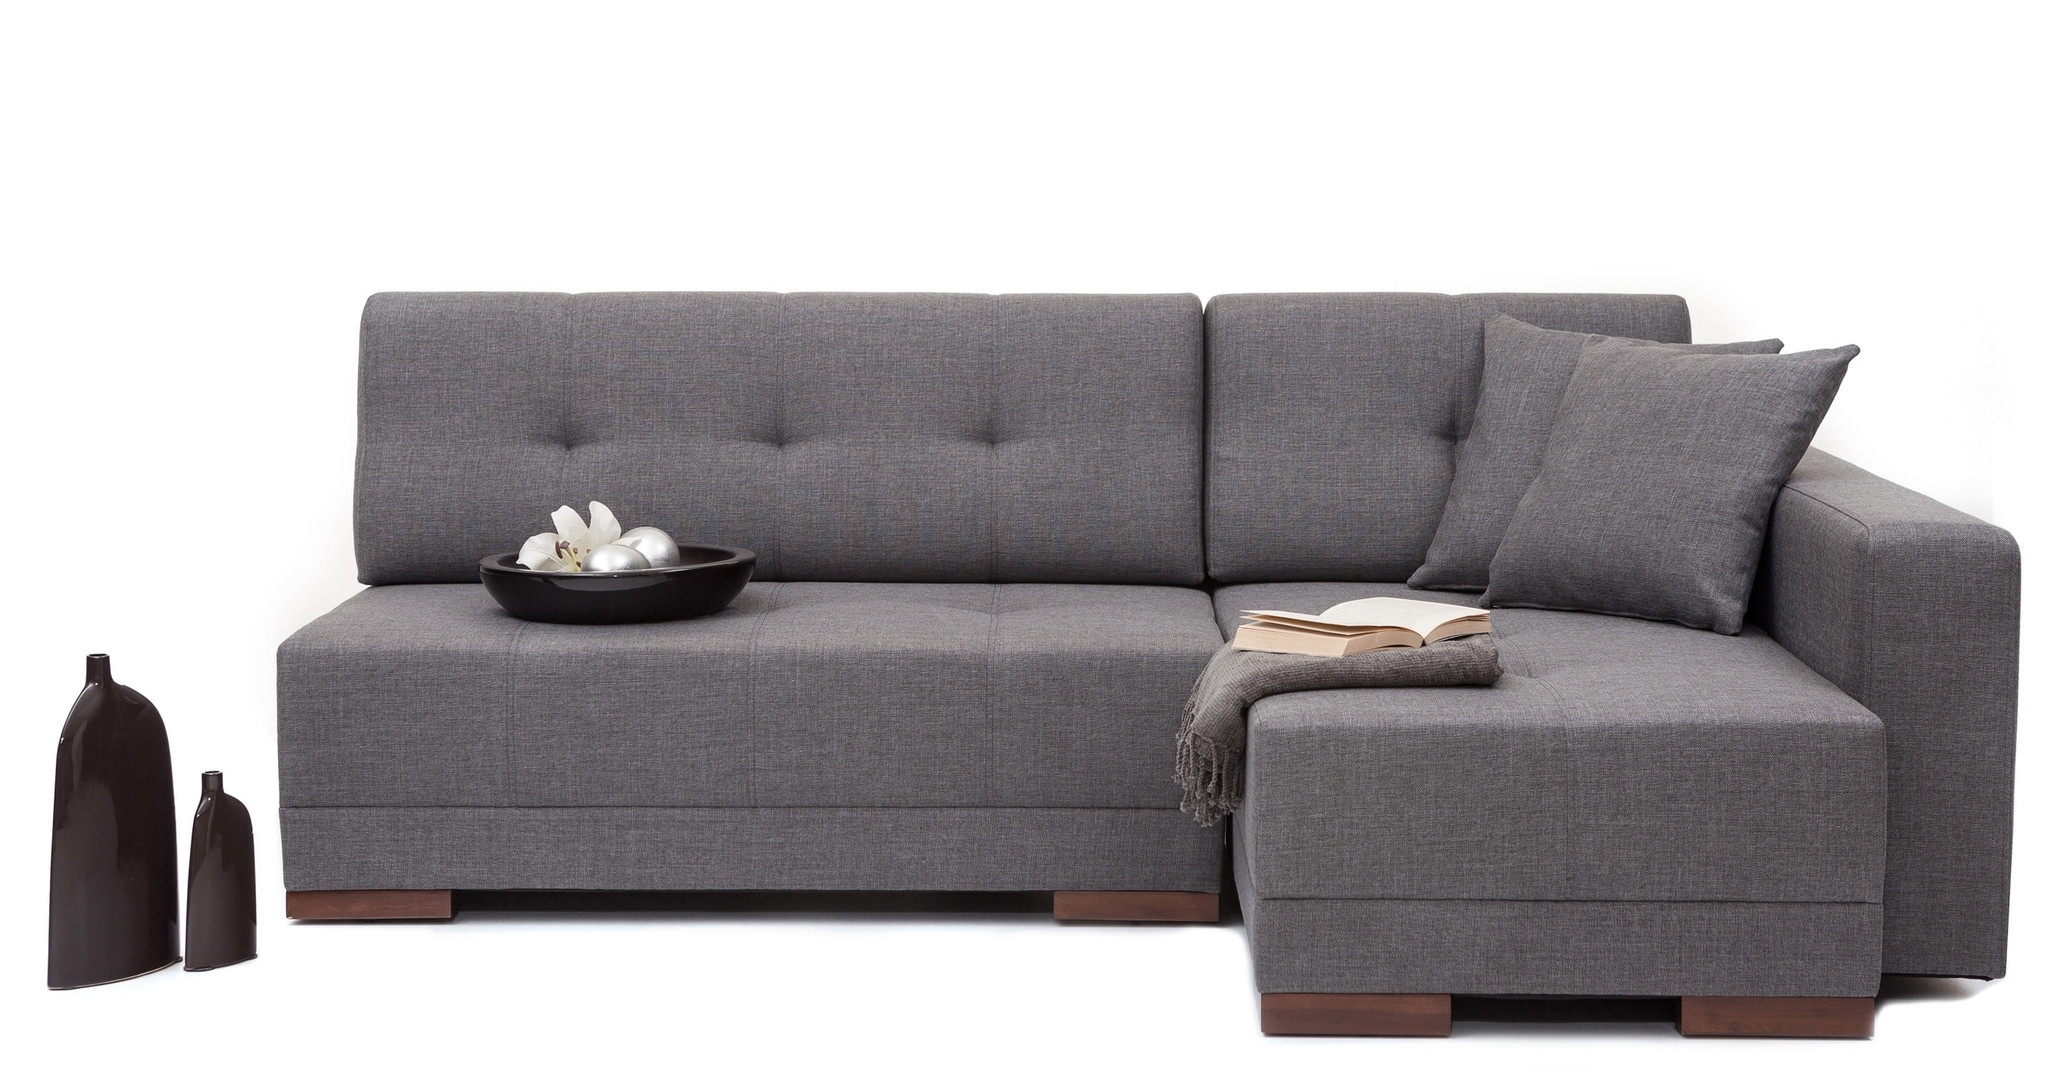 Well Liked New Convertible Sofas 46 About Remodel Sofas And Couches Set With For Convertible Sofas (View 7 of 15)